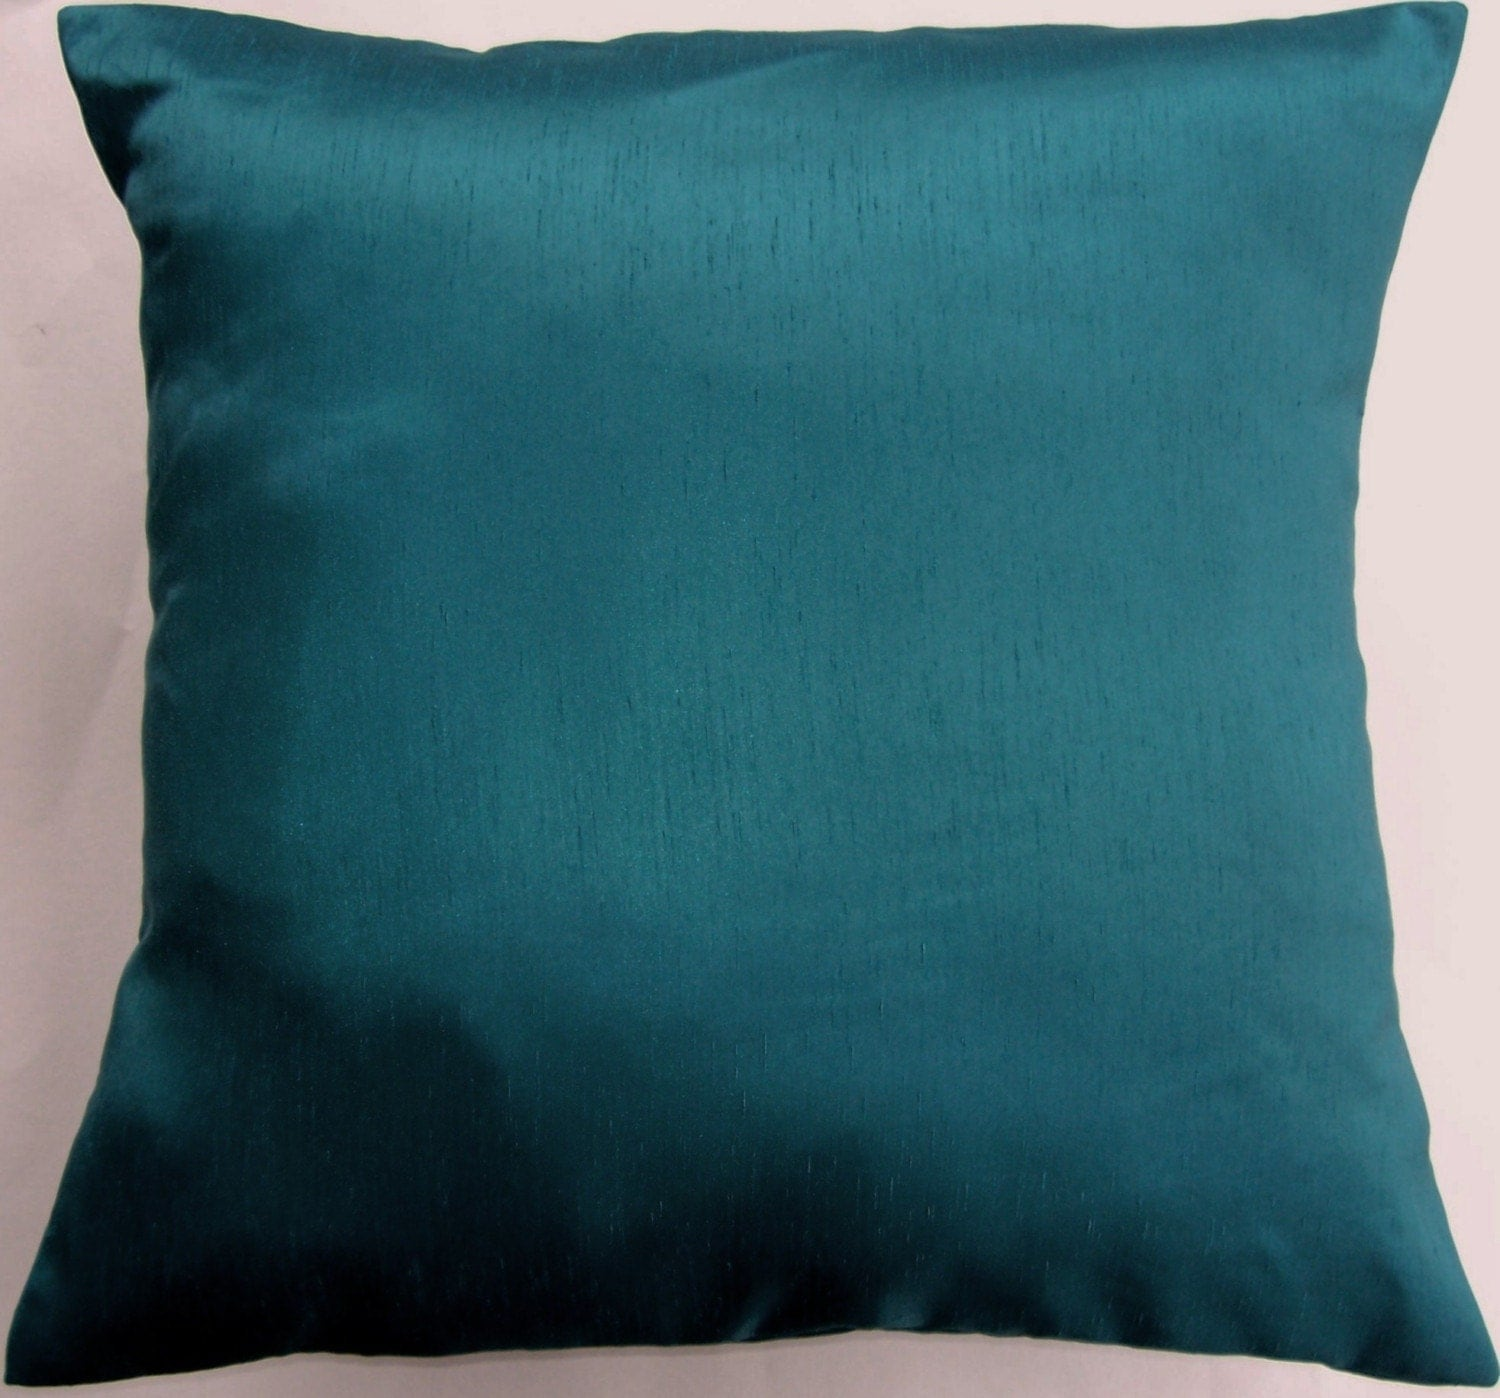 Throw Pillow Covers Teal : Dark Teal Pillow Cover